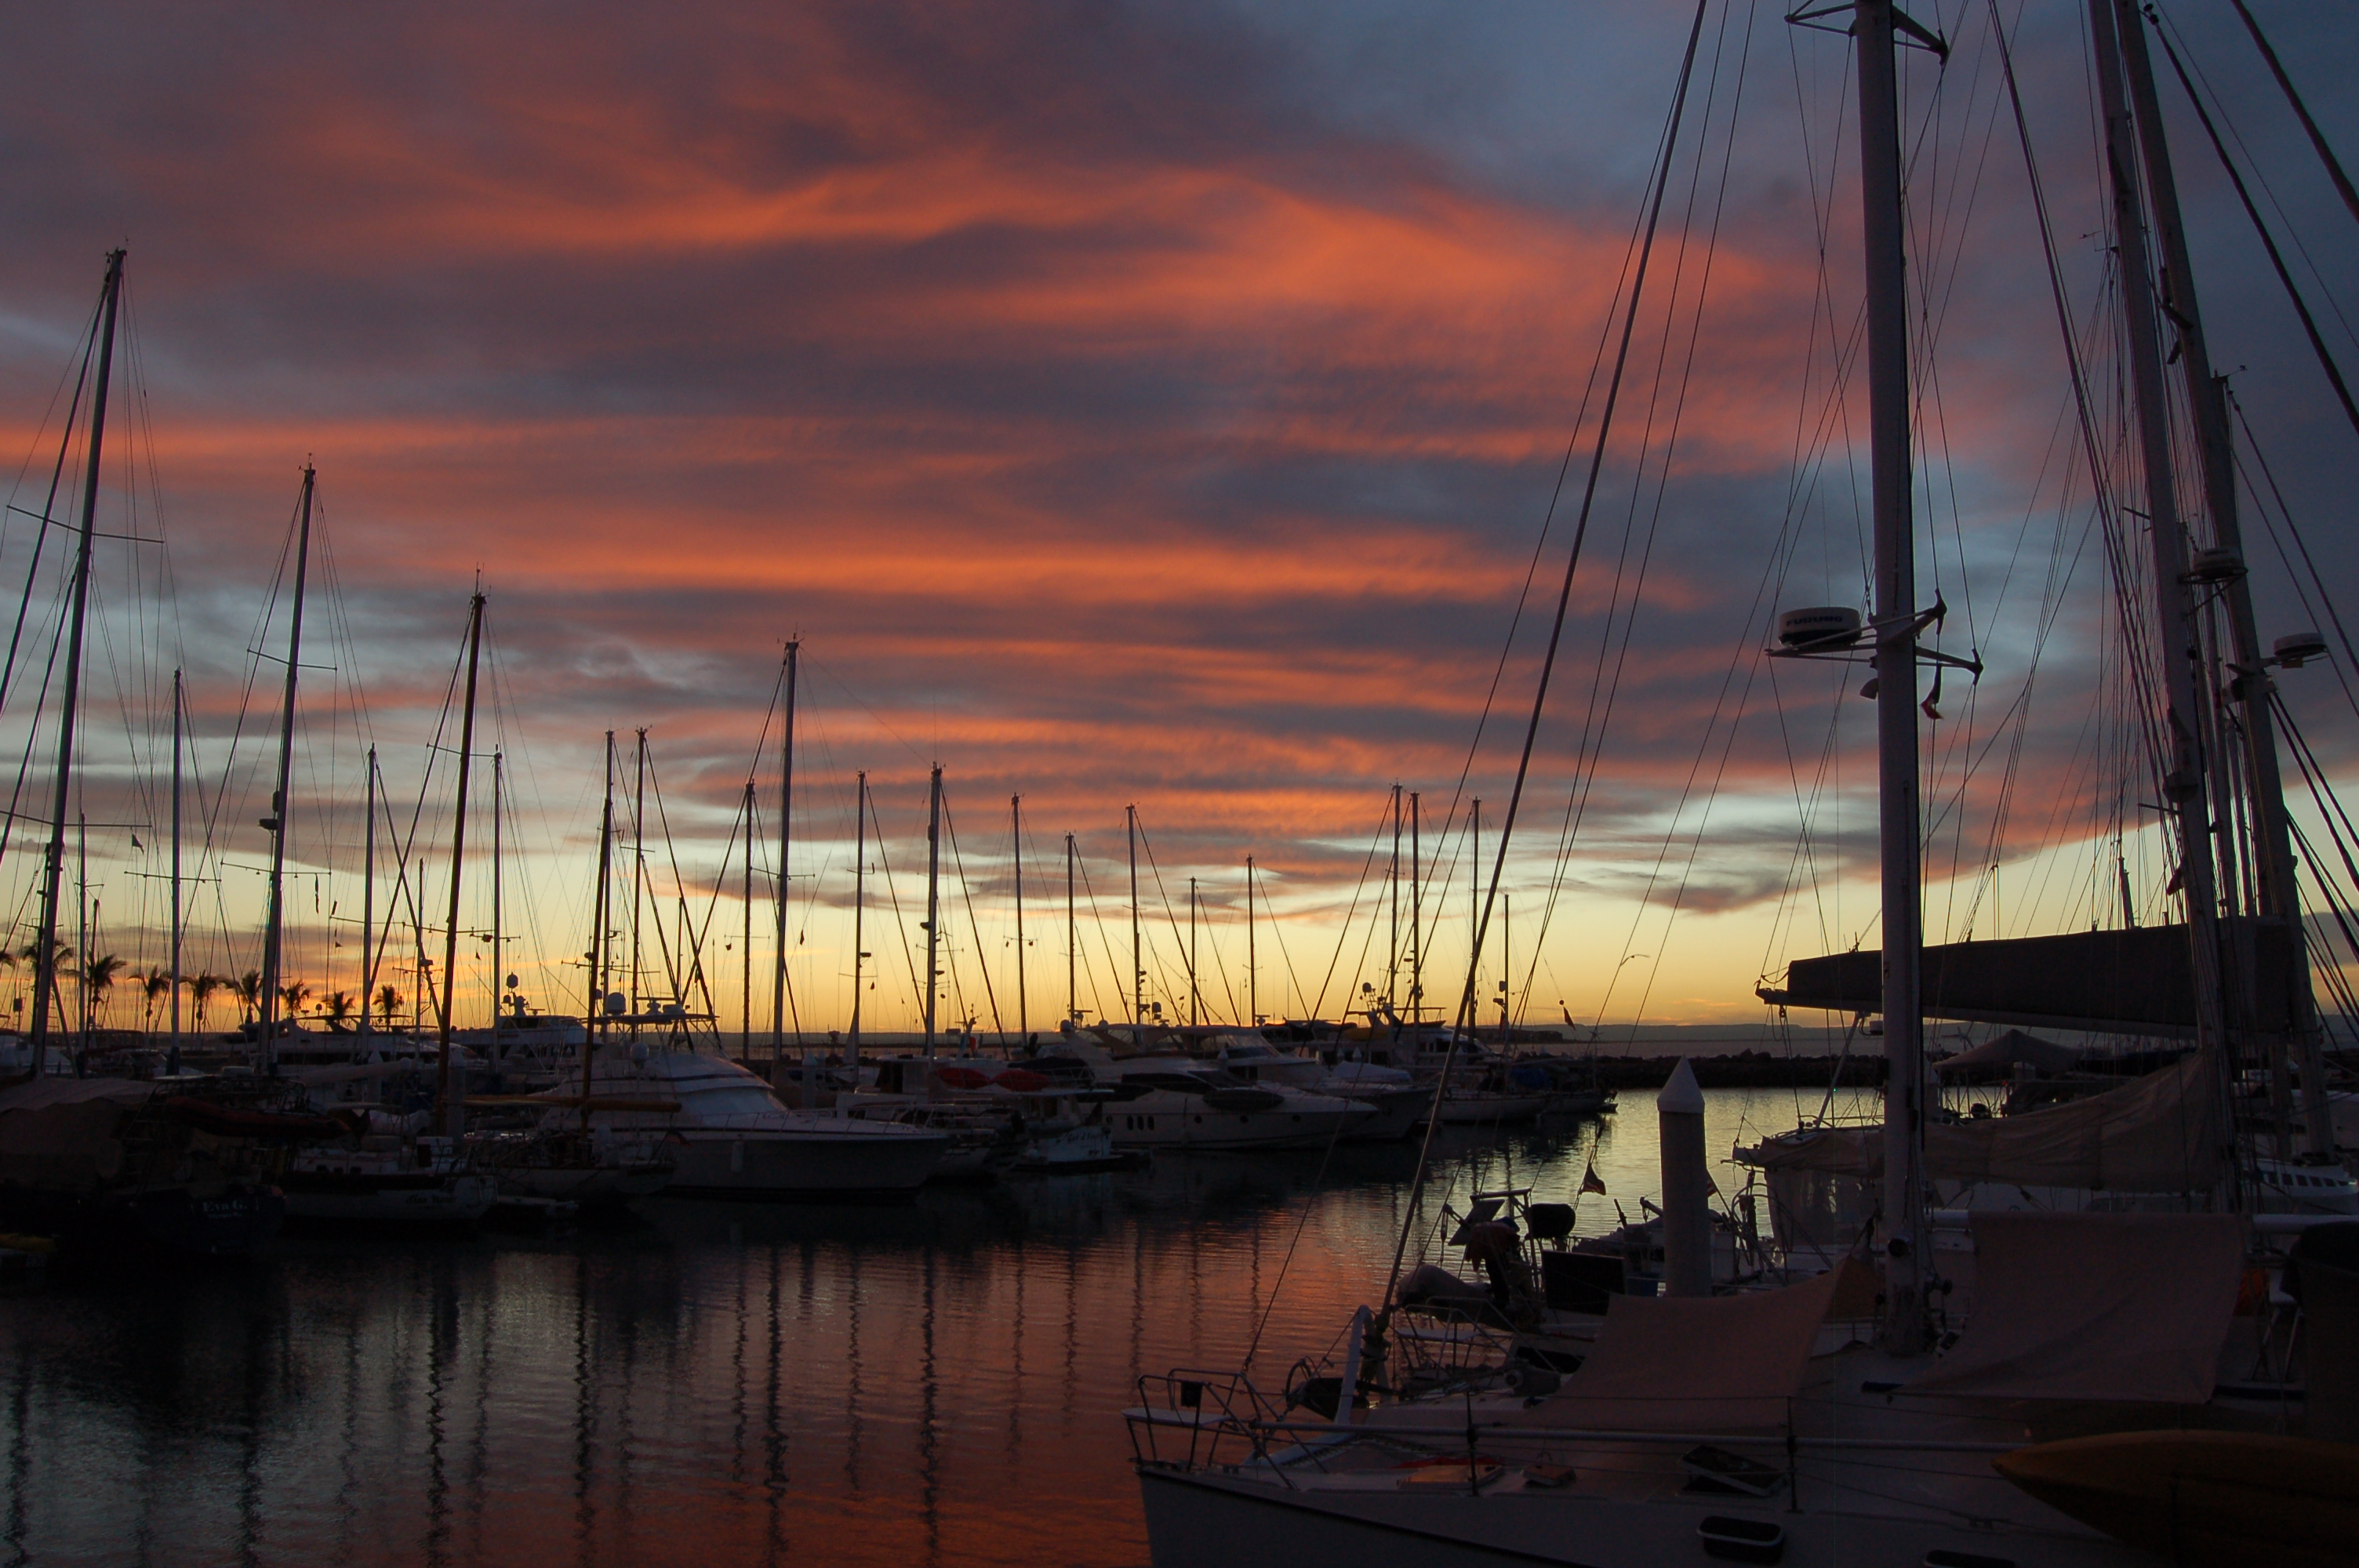 Another perfect sunset at the Palmira Marina, La Paz